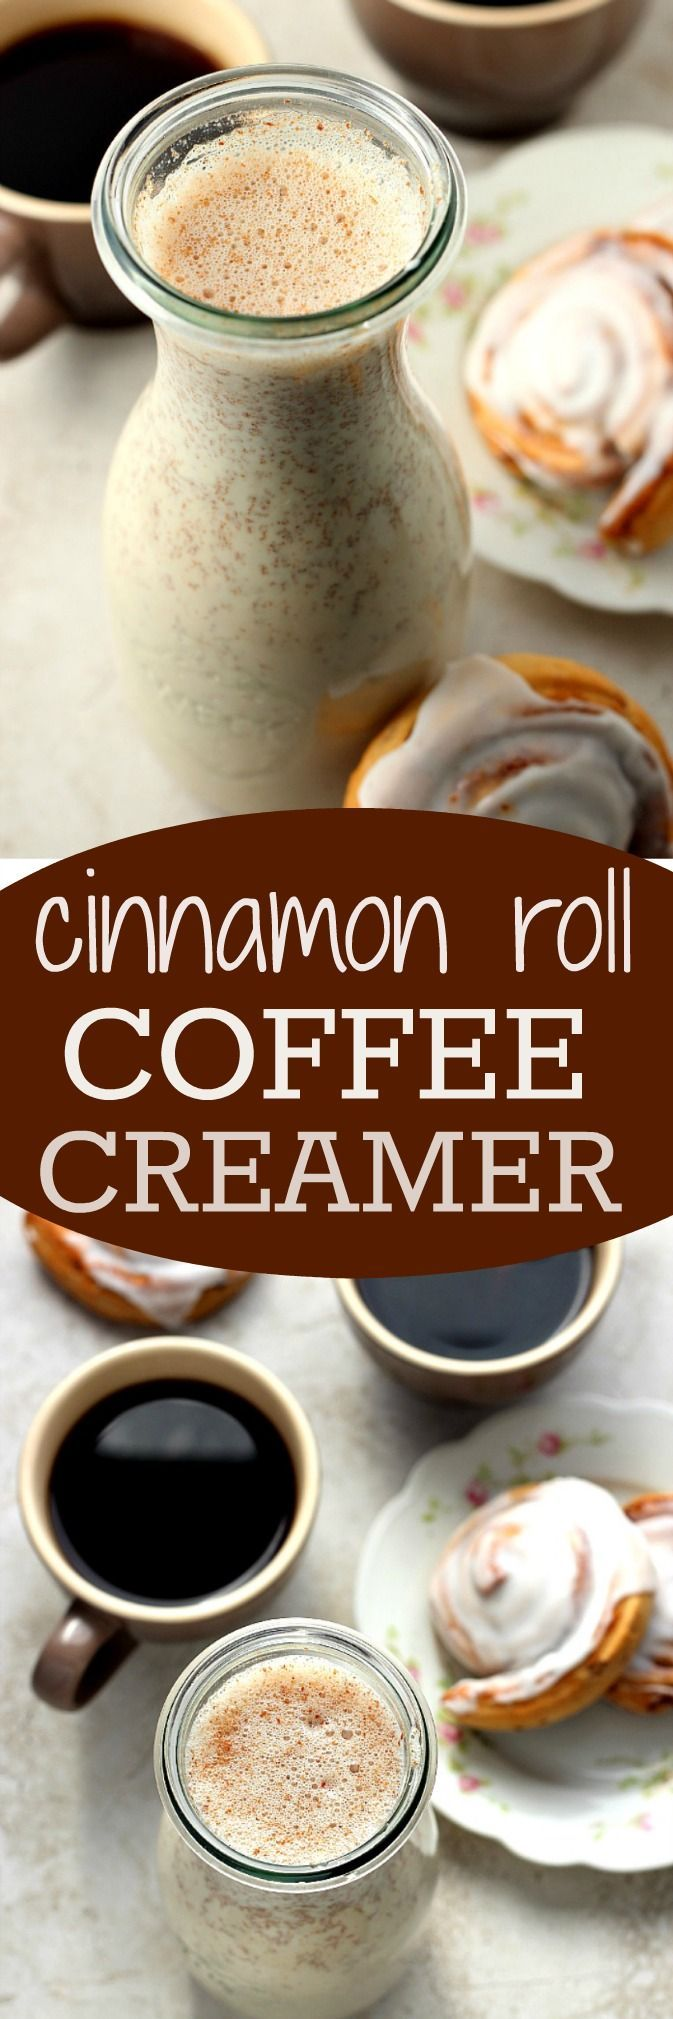 Homemade Cinnamon Roll Coffee Creamer - a 5-minute coffee creamer that requires only 5 ingredients and tastes exactly like your favorite…